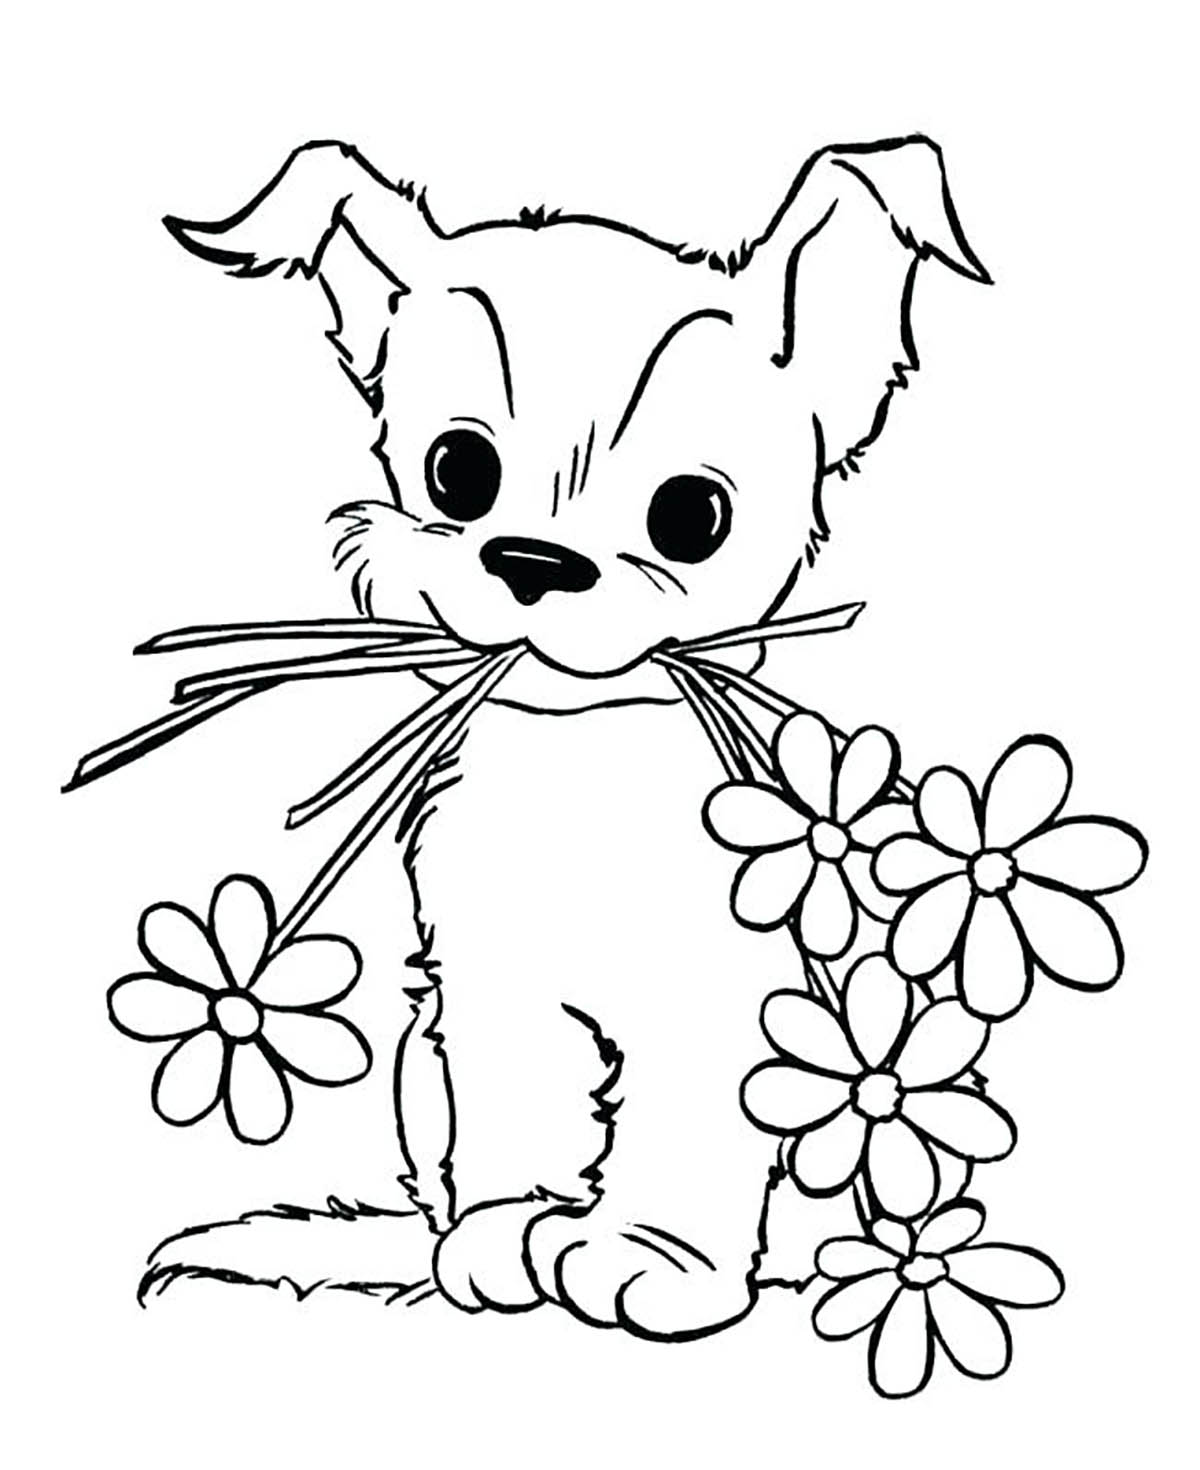 Dogs to color for kids : dog with flowers - Dogs Kids Coloring Pages